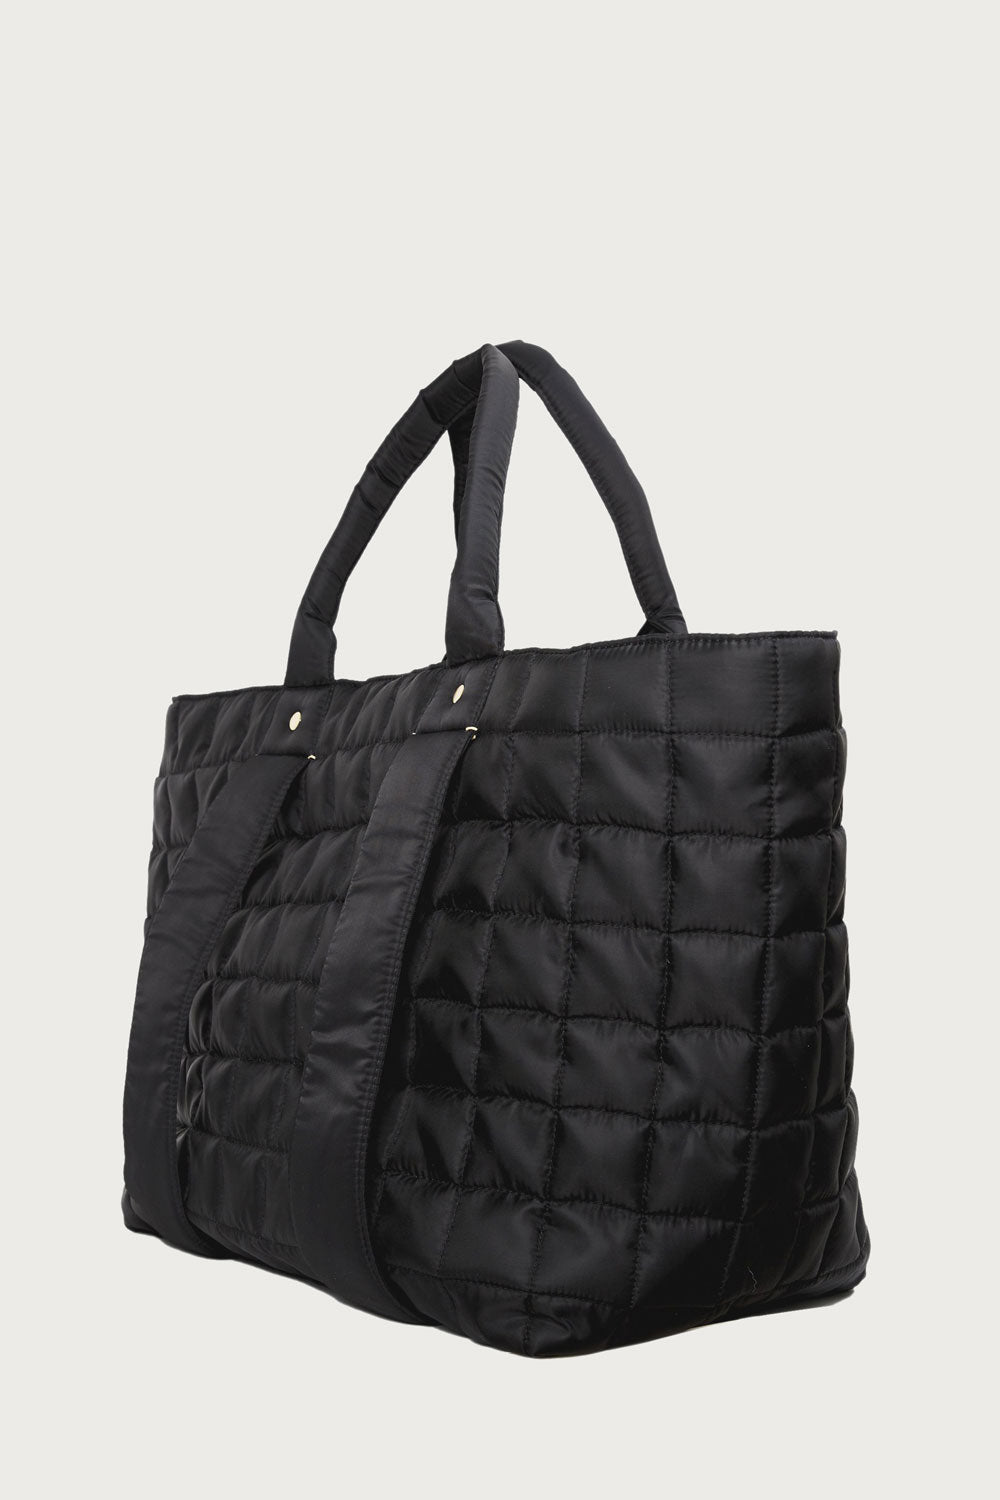 Giant Trop in Black Quilted